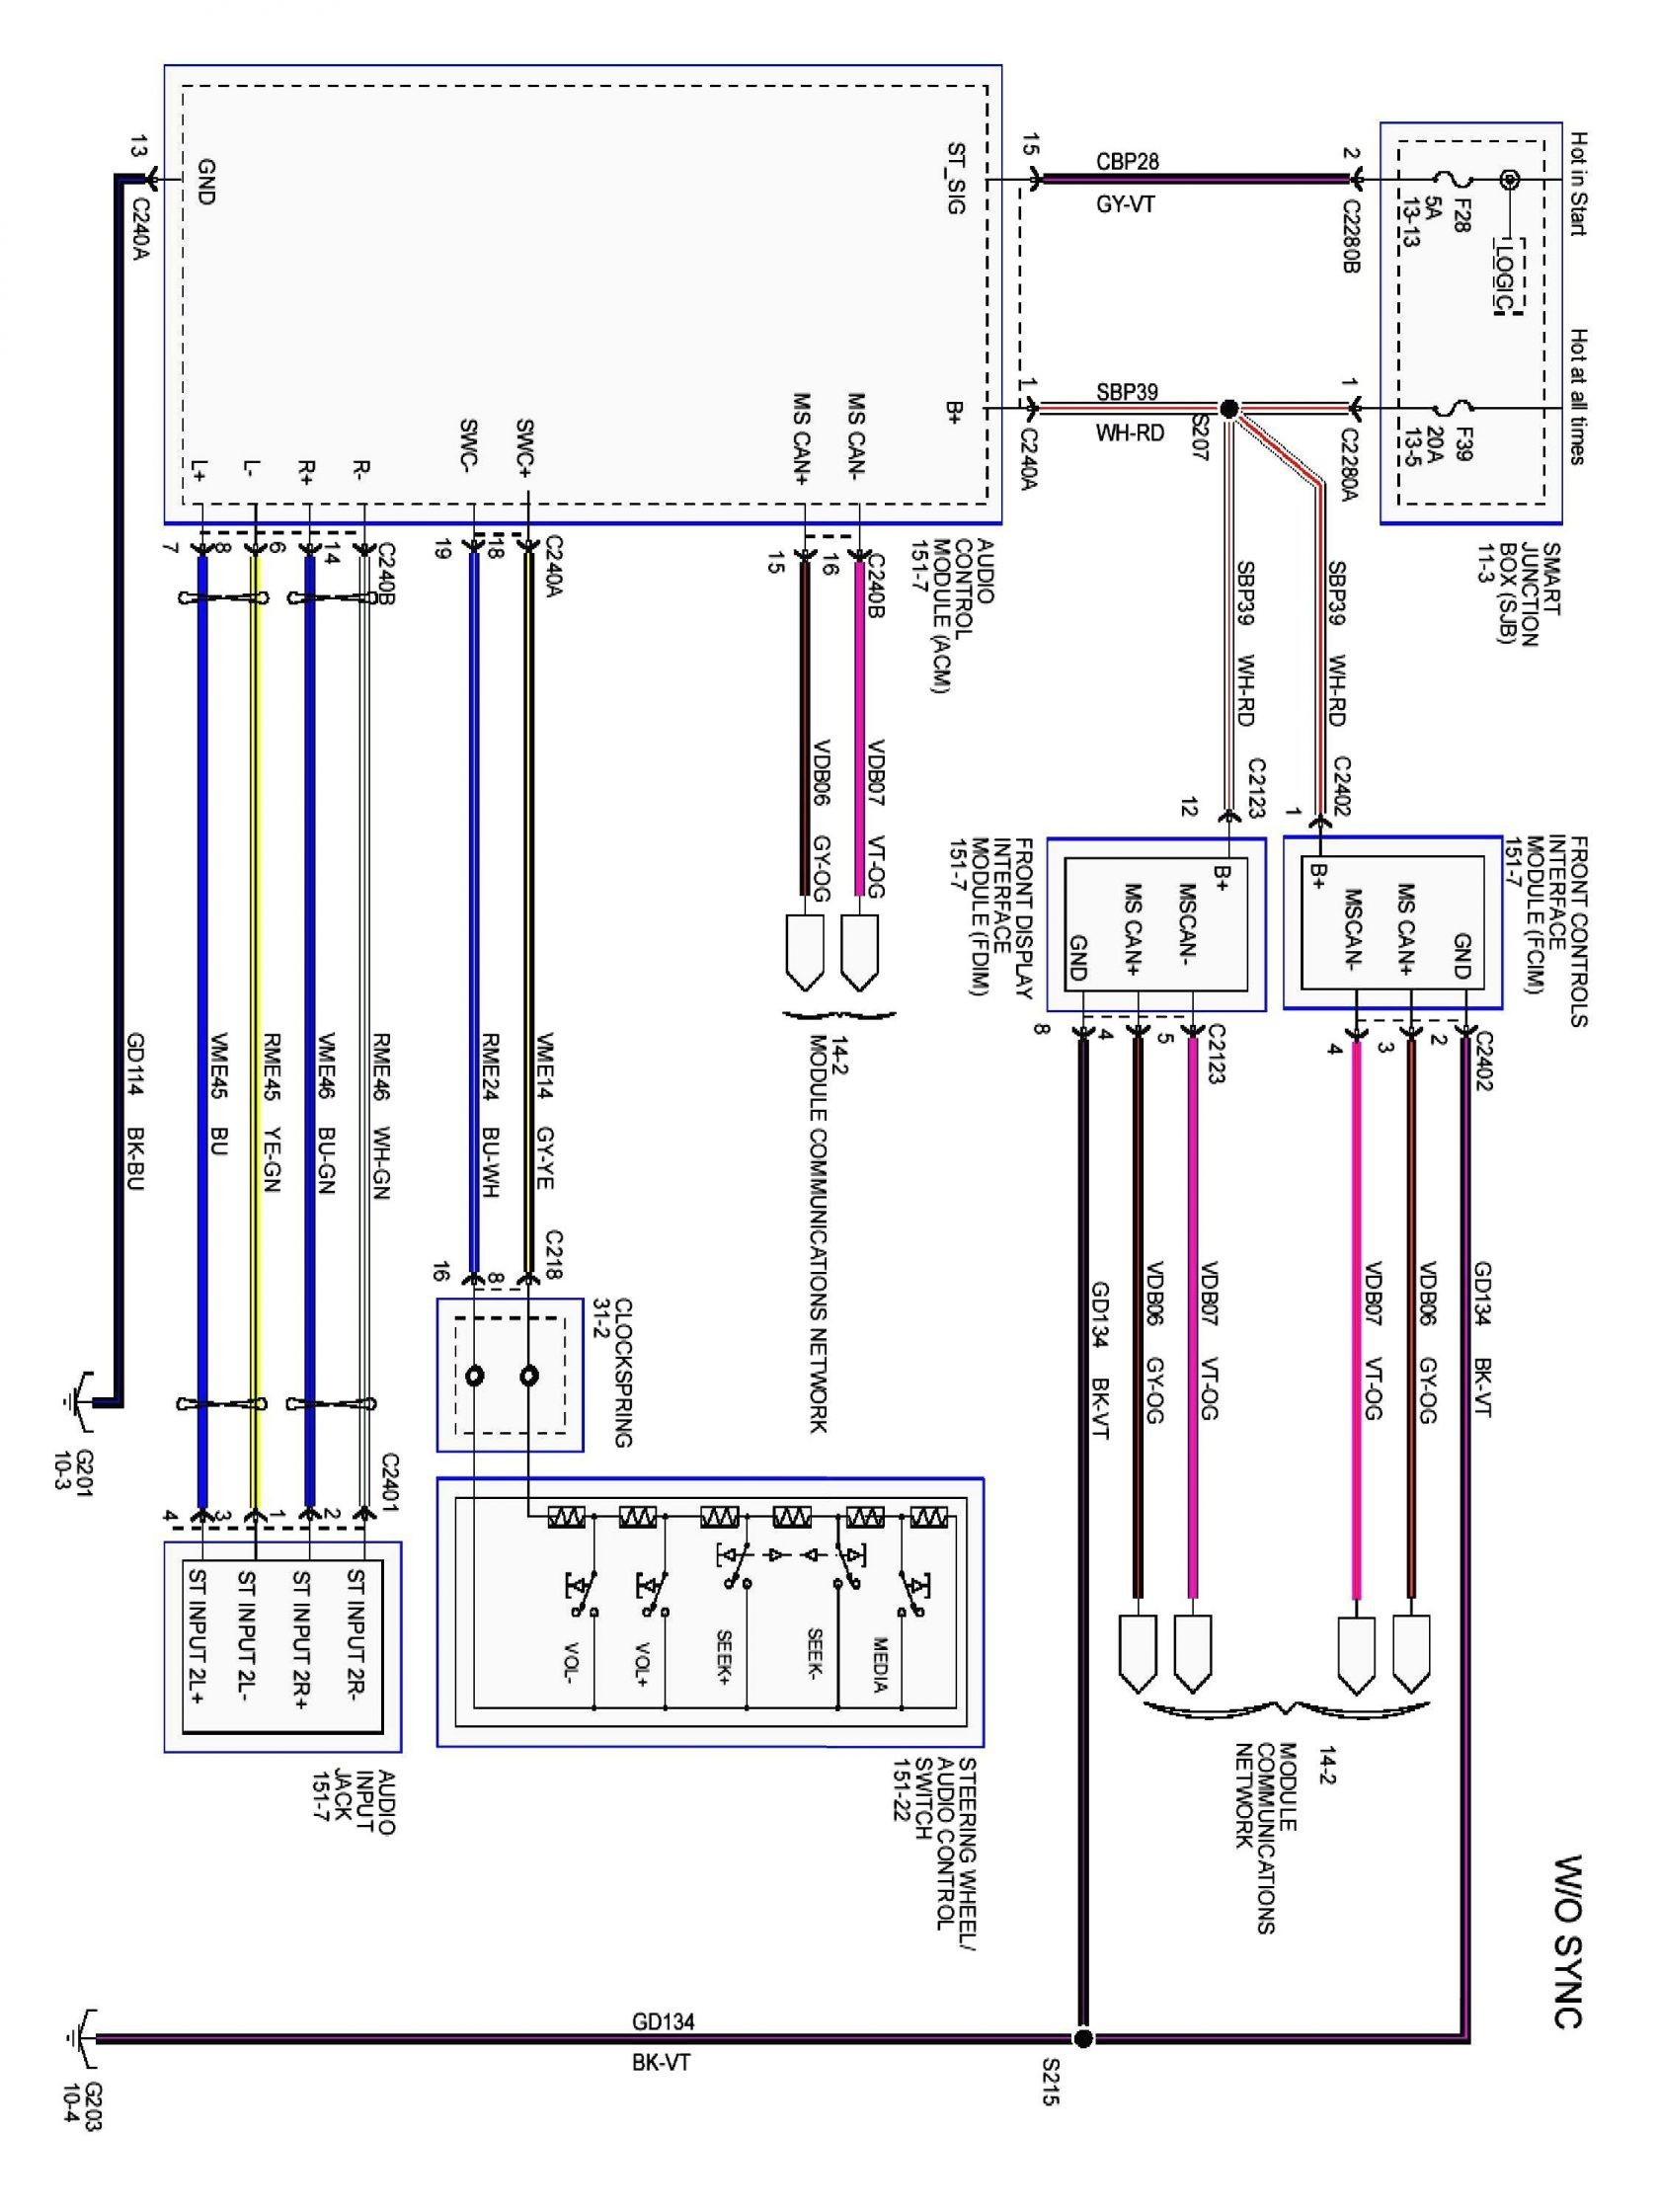 amp research power step wiring diagram Collection-Wiring Diagram For Rv Steps New Amp Power Step Wiring Diagram 10-s